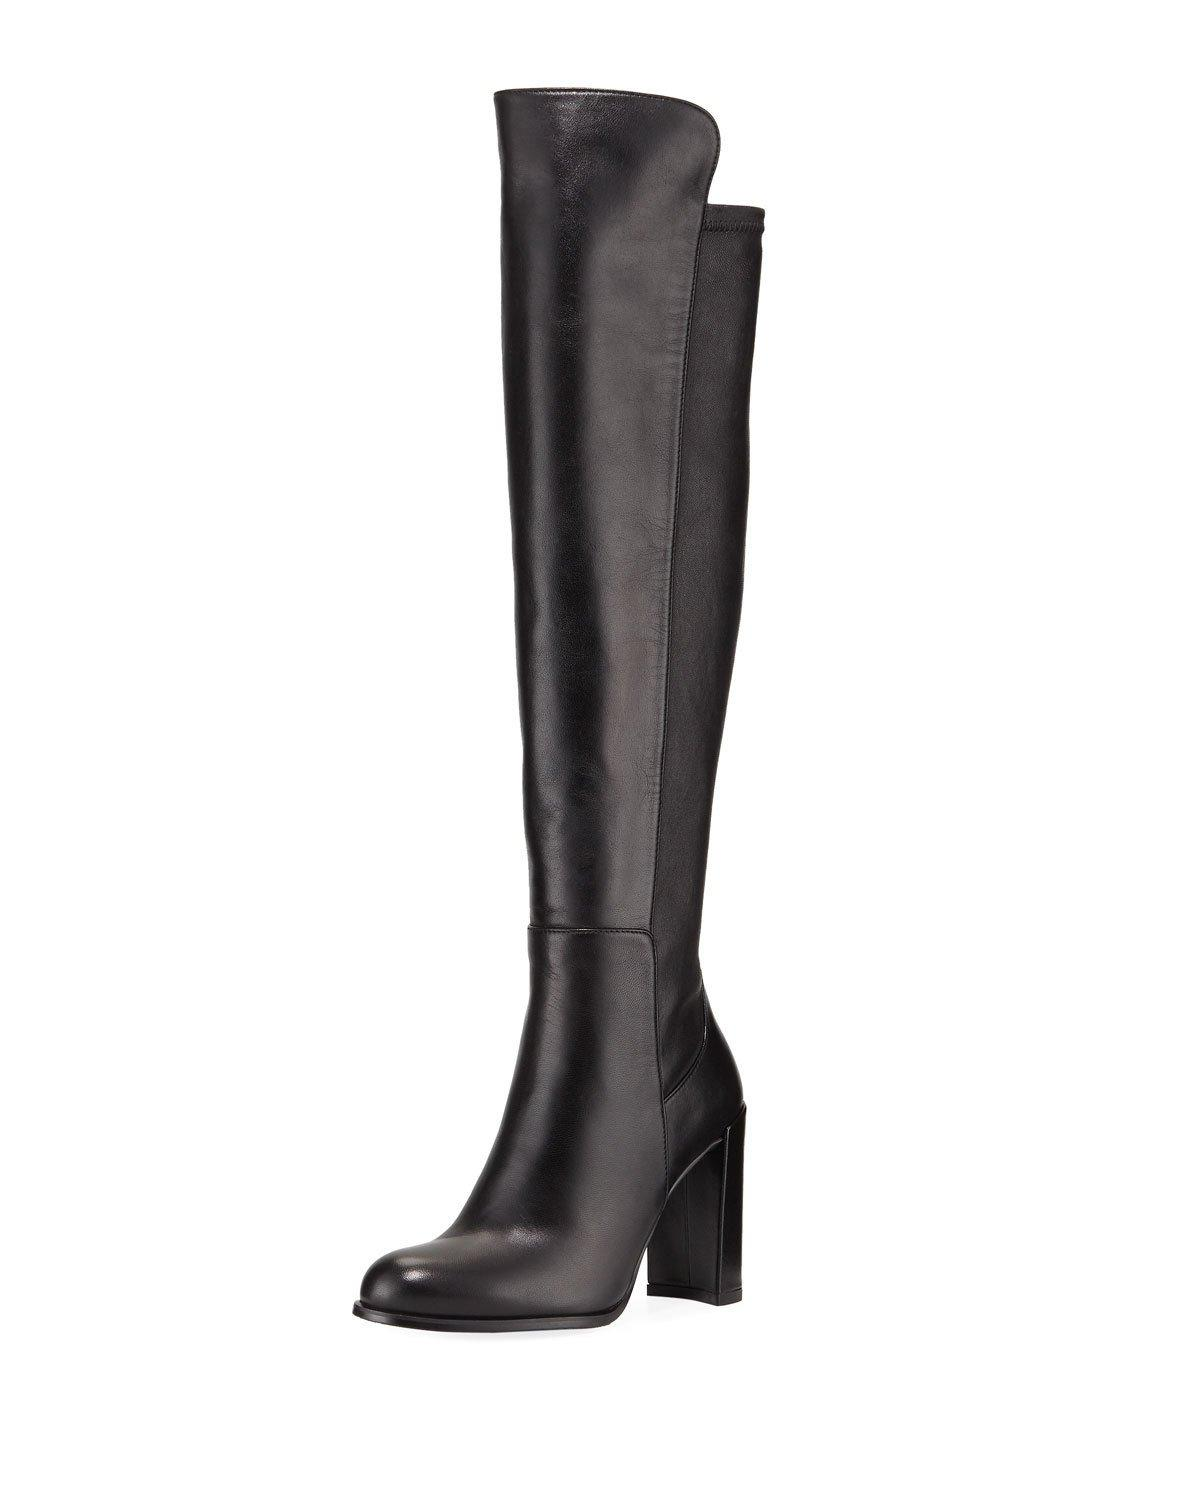 73be7d30bfa Stuart Weitzman Alljill Over-The-Knee Leather Boot In Grey